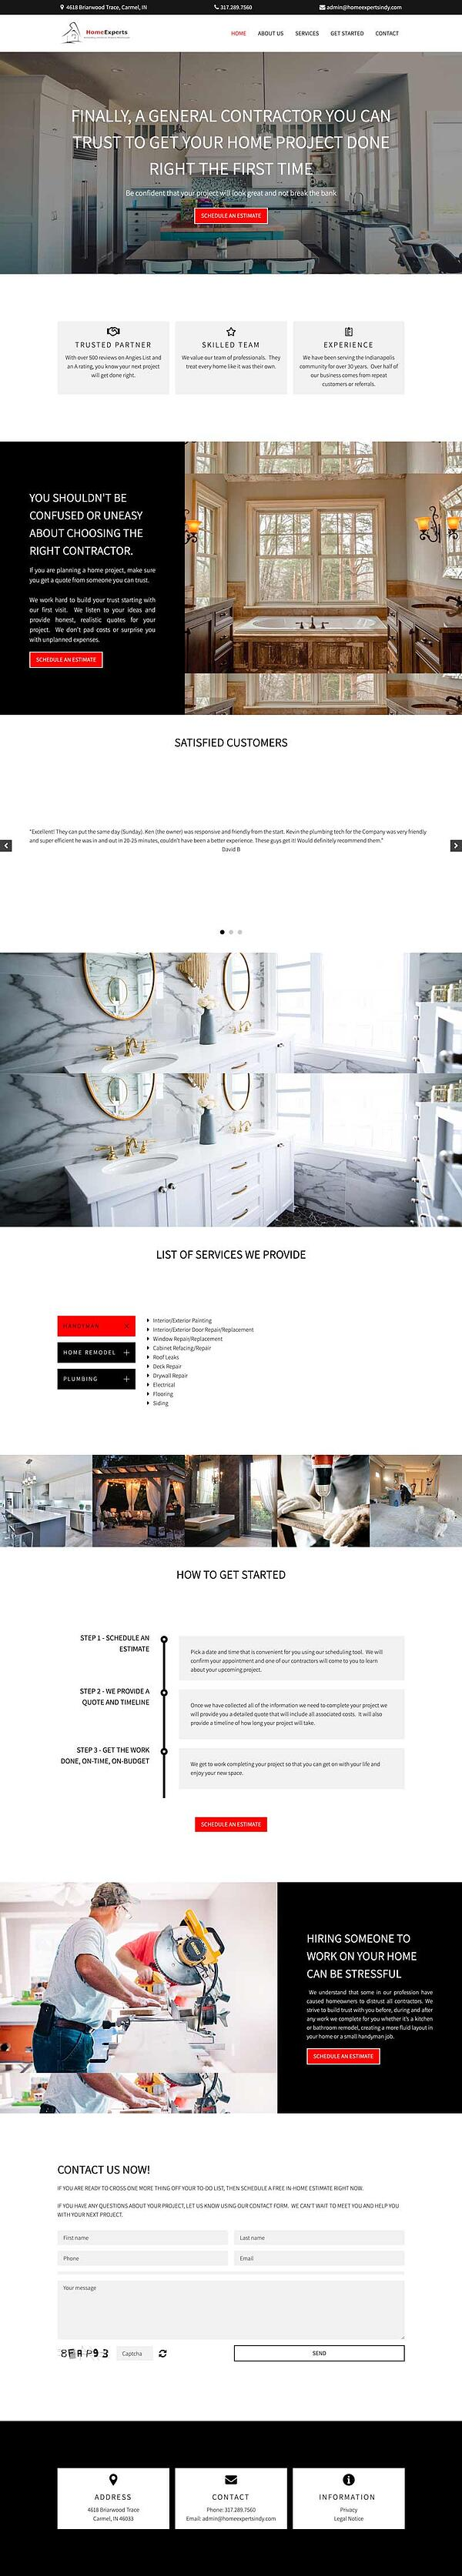 storybrand website example home experts